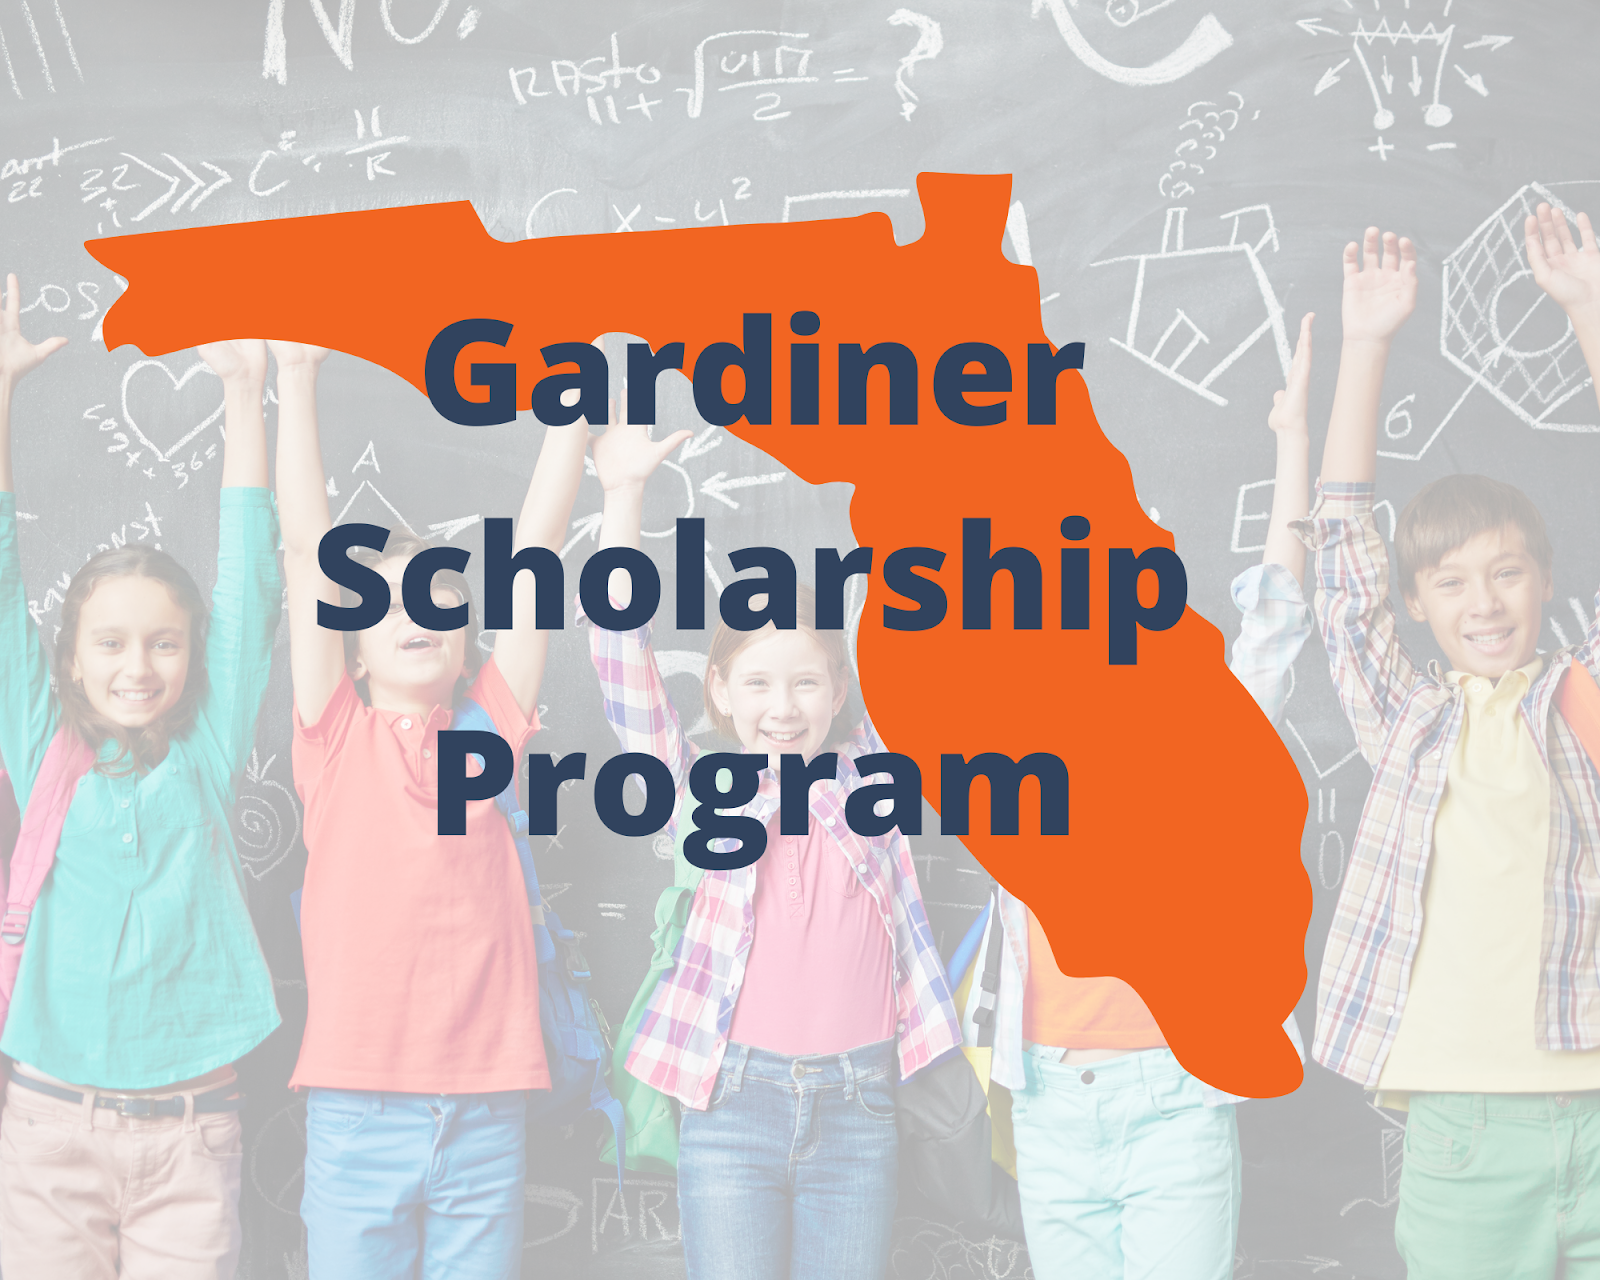 The name of Florida's Education Savings Account (ESA) program is written over a silhouette of the state. Blue words write Gardiner Scholarship Program over an orange silhouette of Florida. Behind the silhouette of the state is children raising their hands and smiling wearing backpacks in front of a school blackboard.